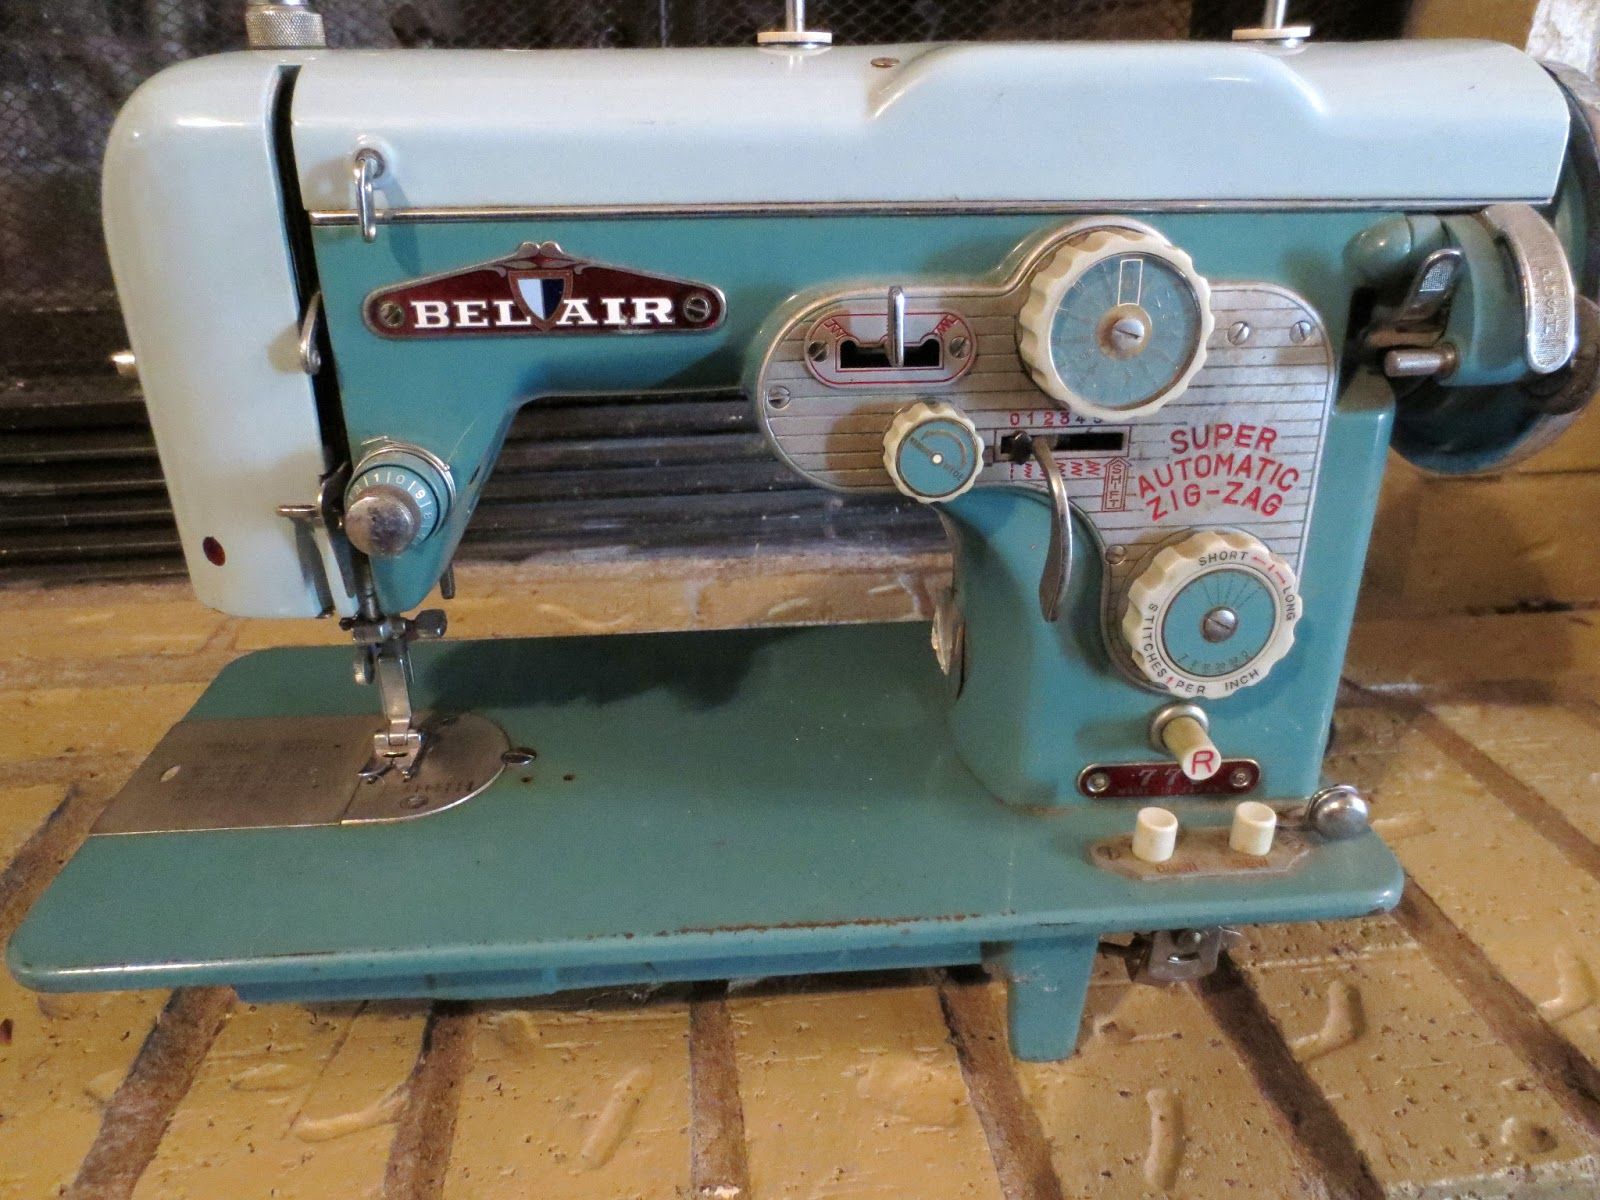 bel air sewing machine